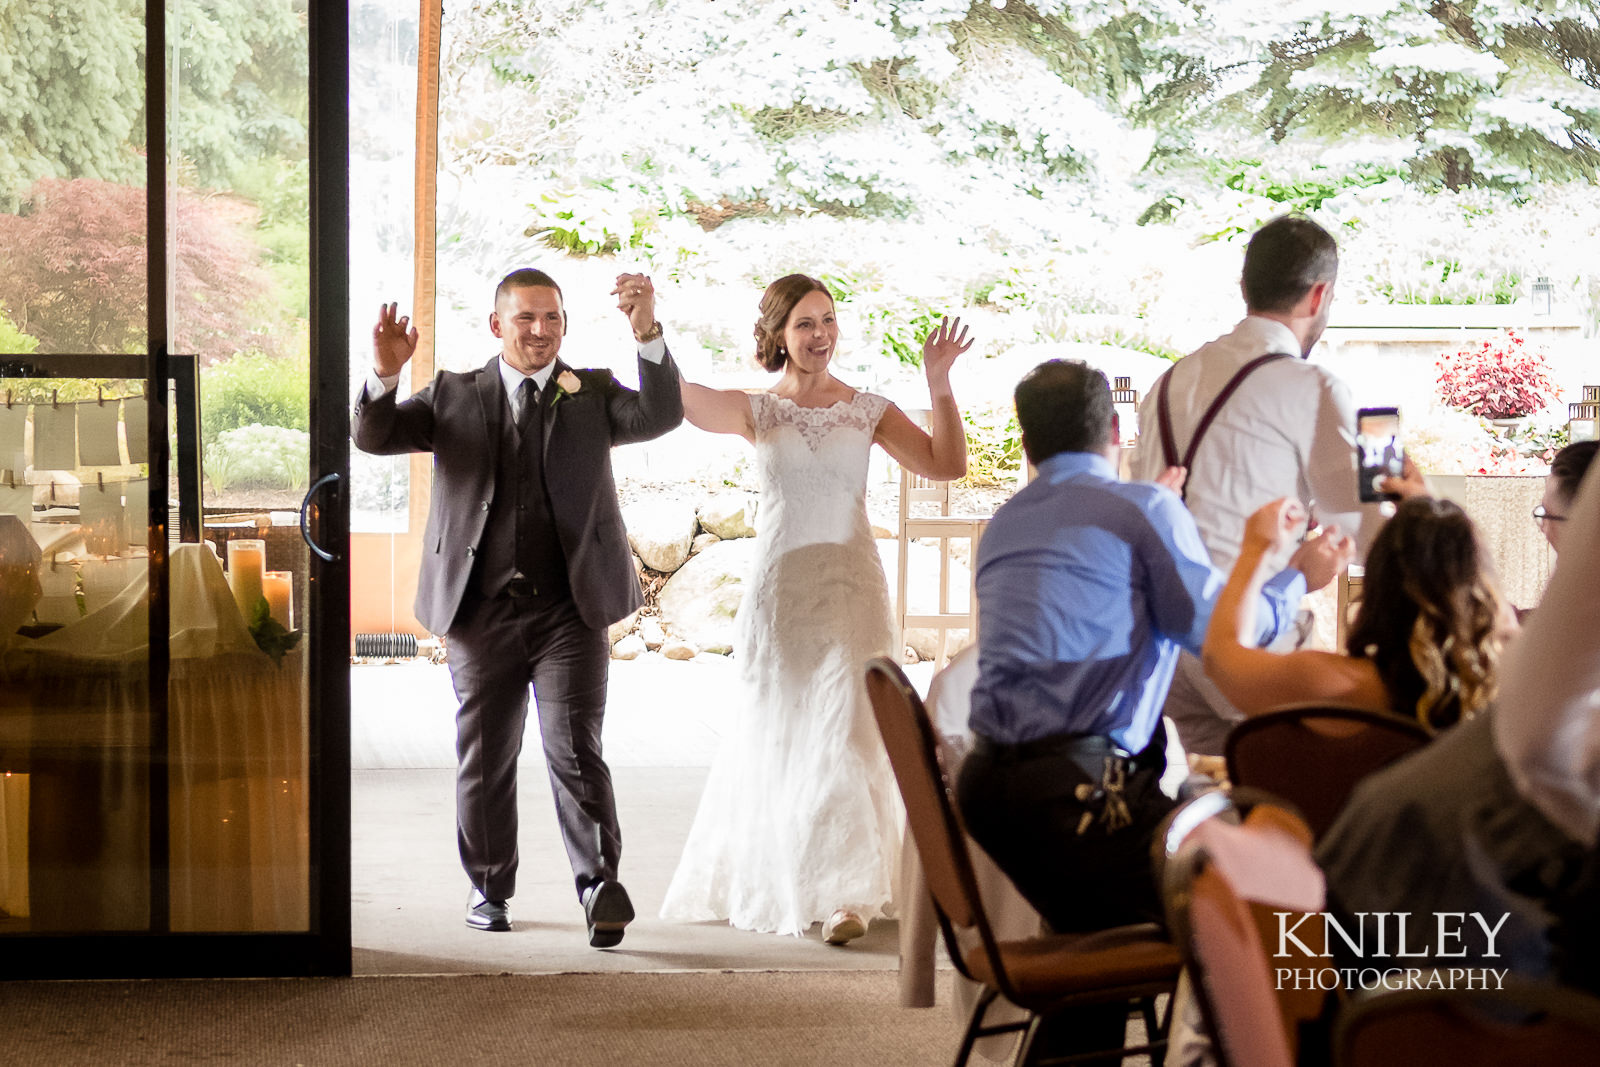 084 - Ravenwood Golf Club wedding pictures - Rochester NY - Kniley Photography - XT2B1532.jpg